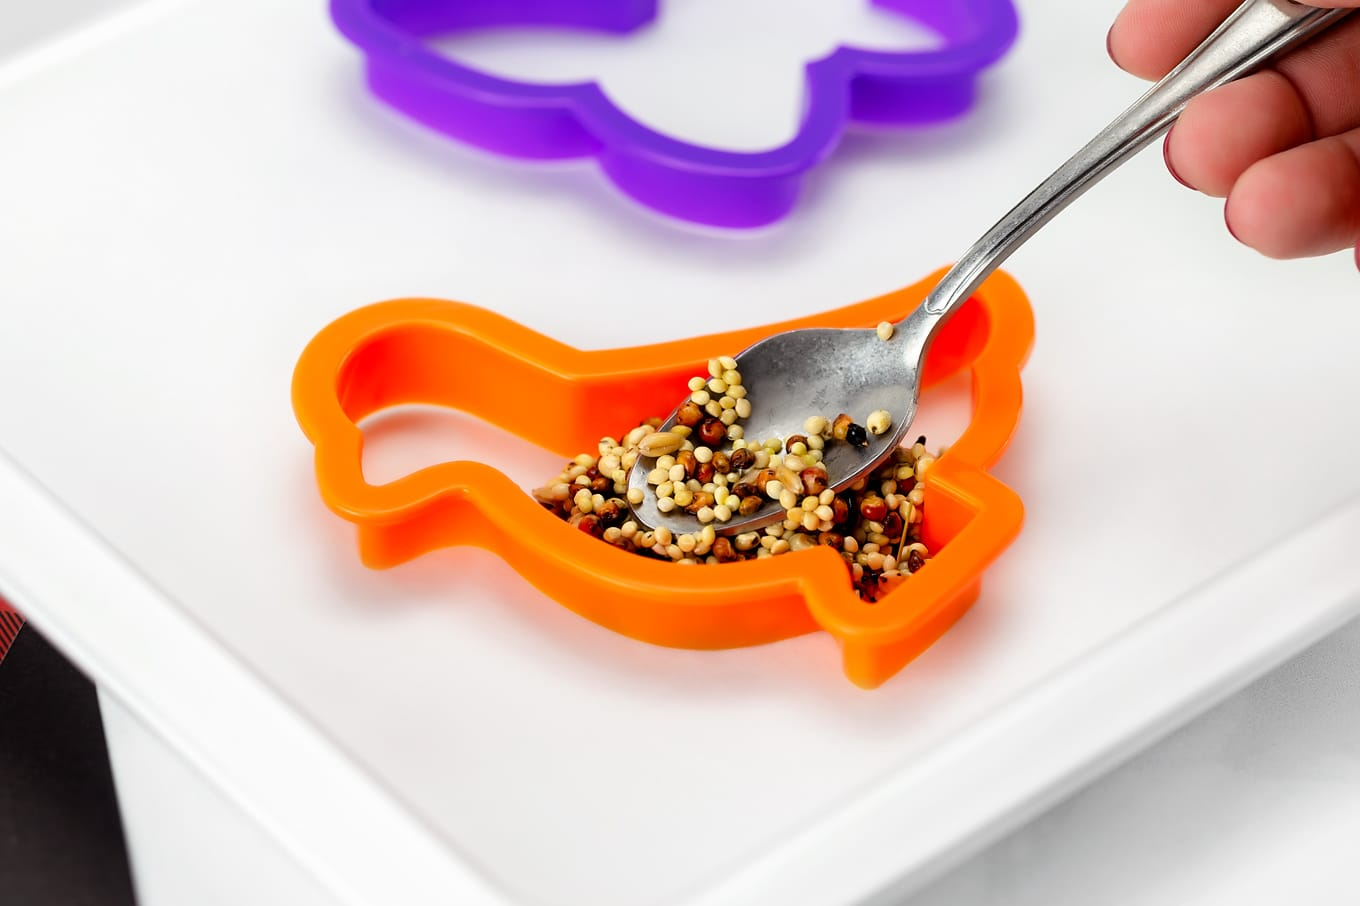 Shaping Birdseed Ornaments with Cookie Cutters